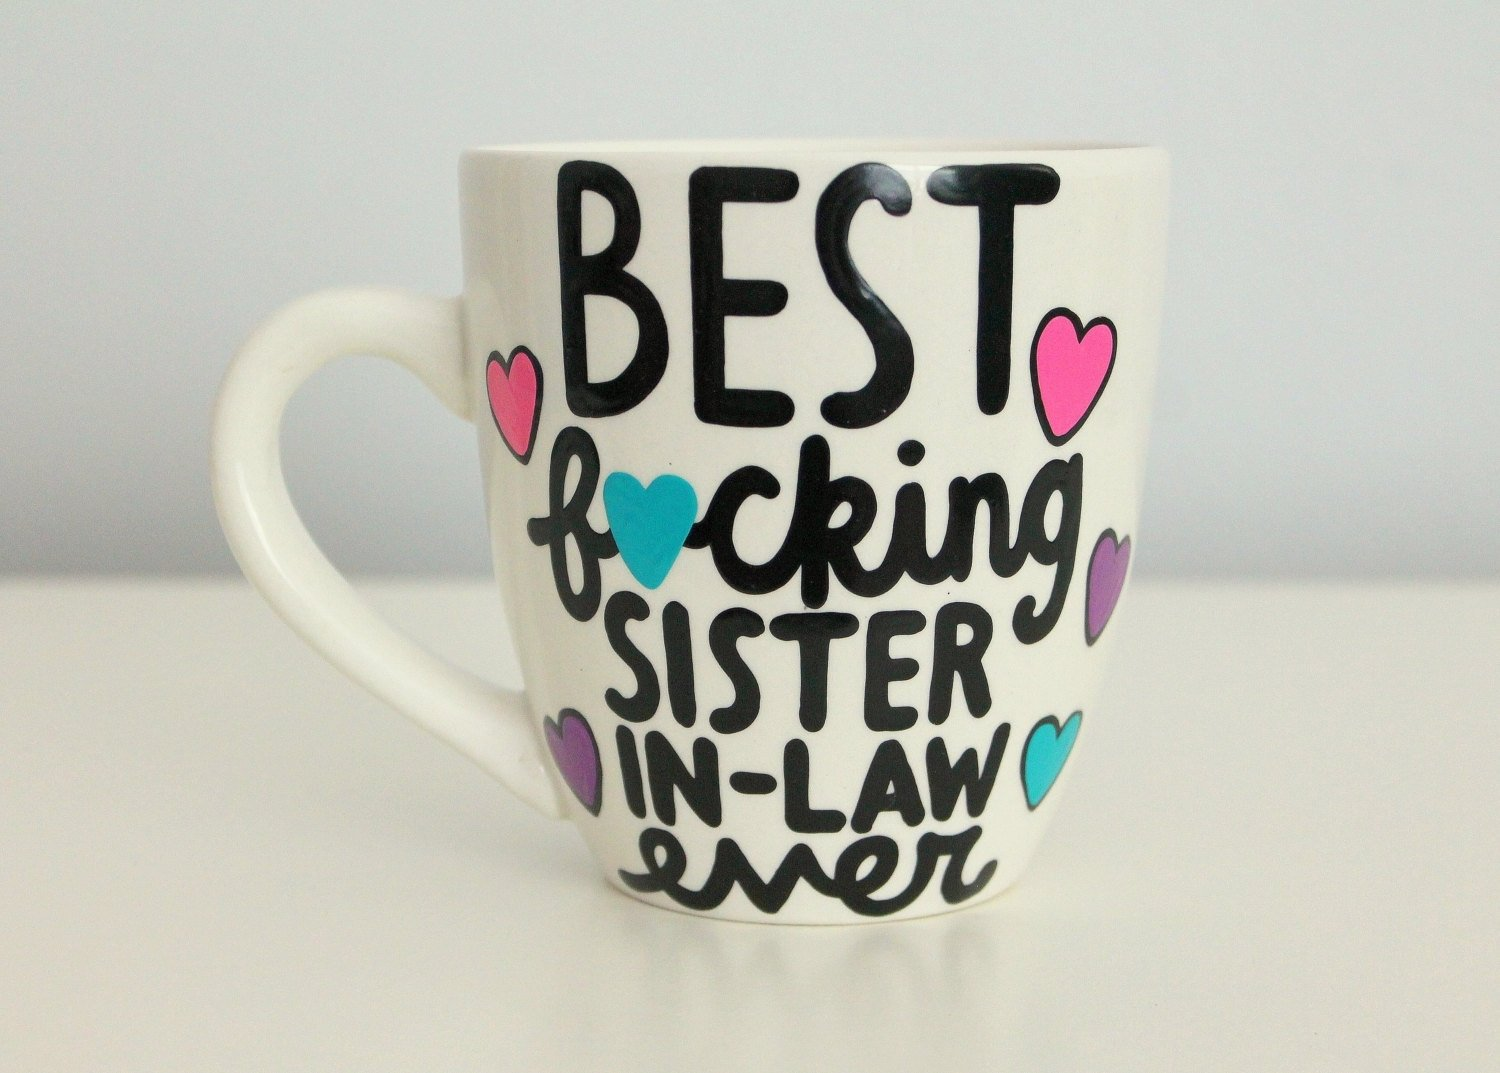 diy gift ideas for sister in law - diy ideas